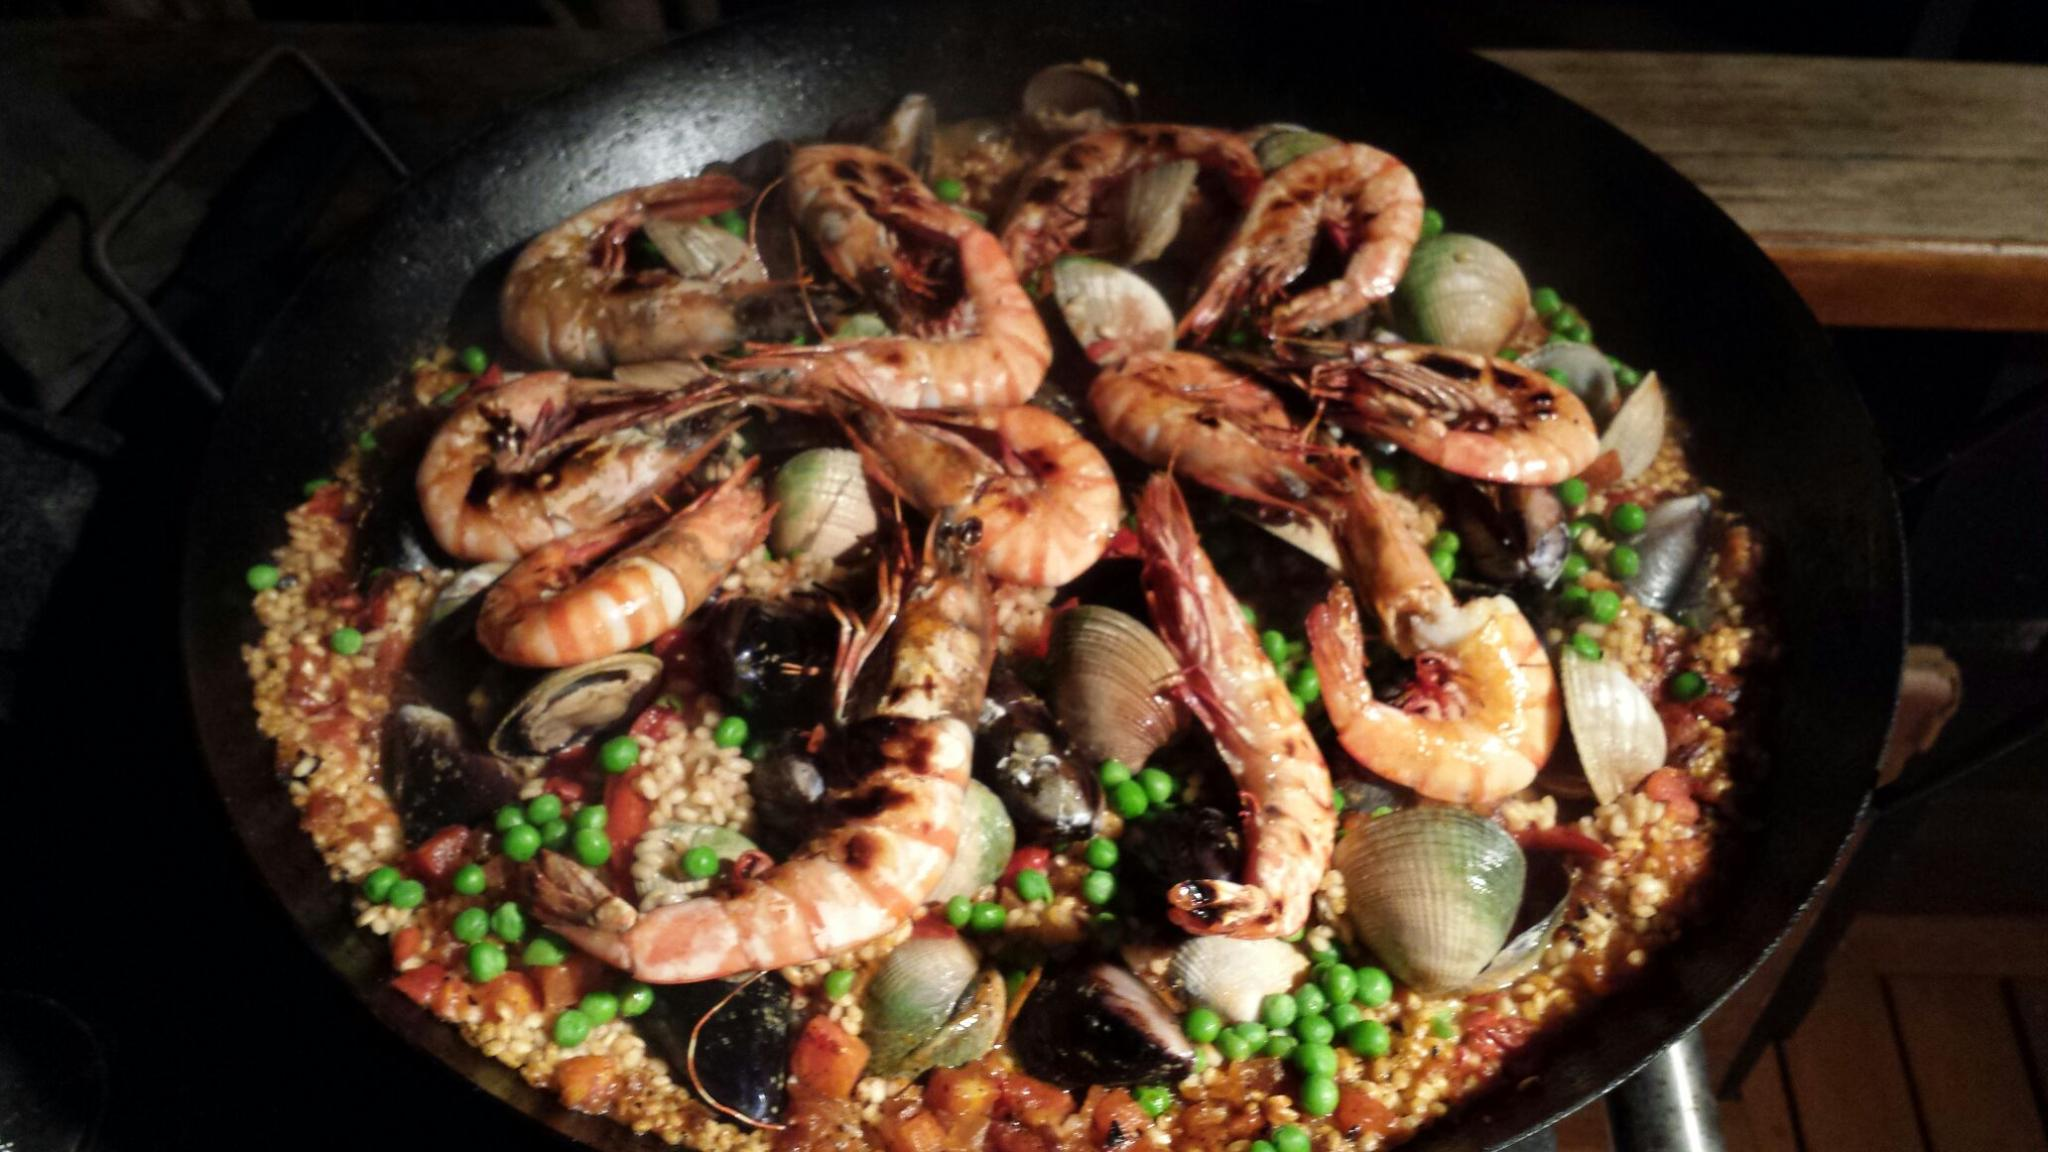 Mary's AMAZING seafood paella